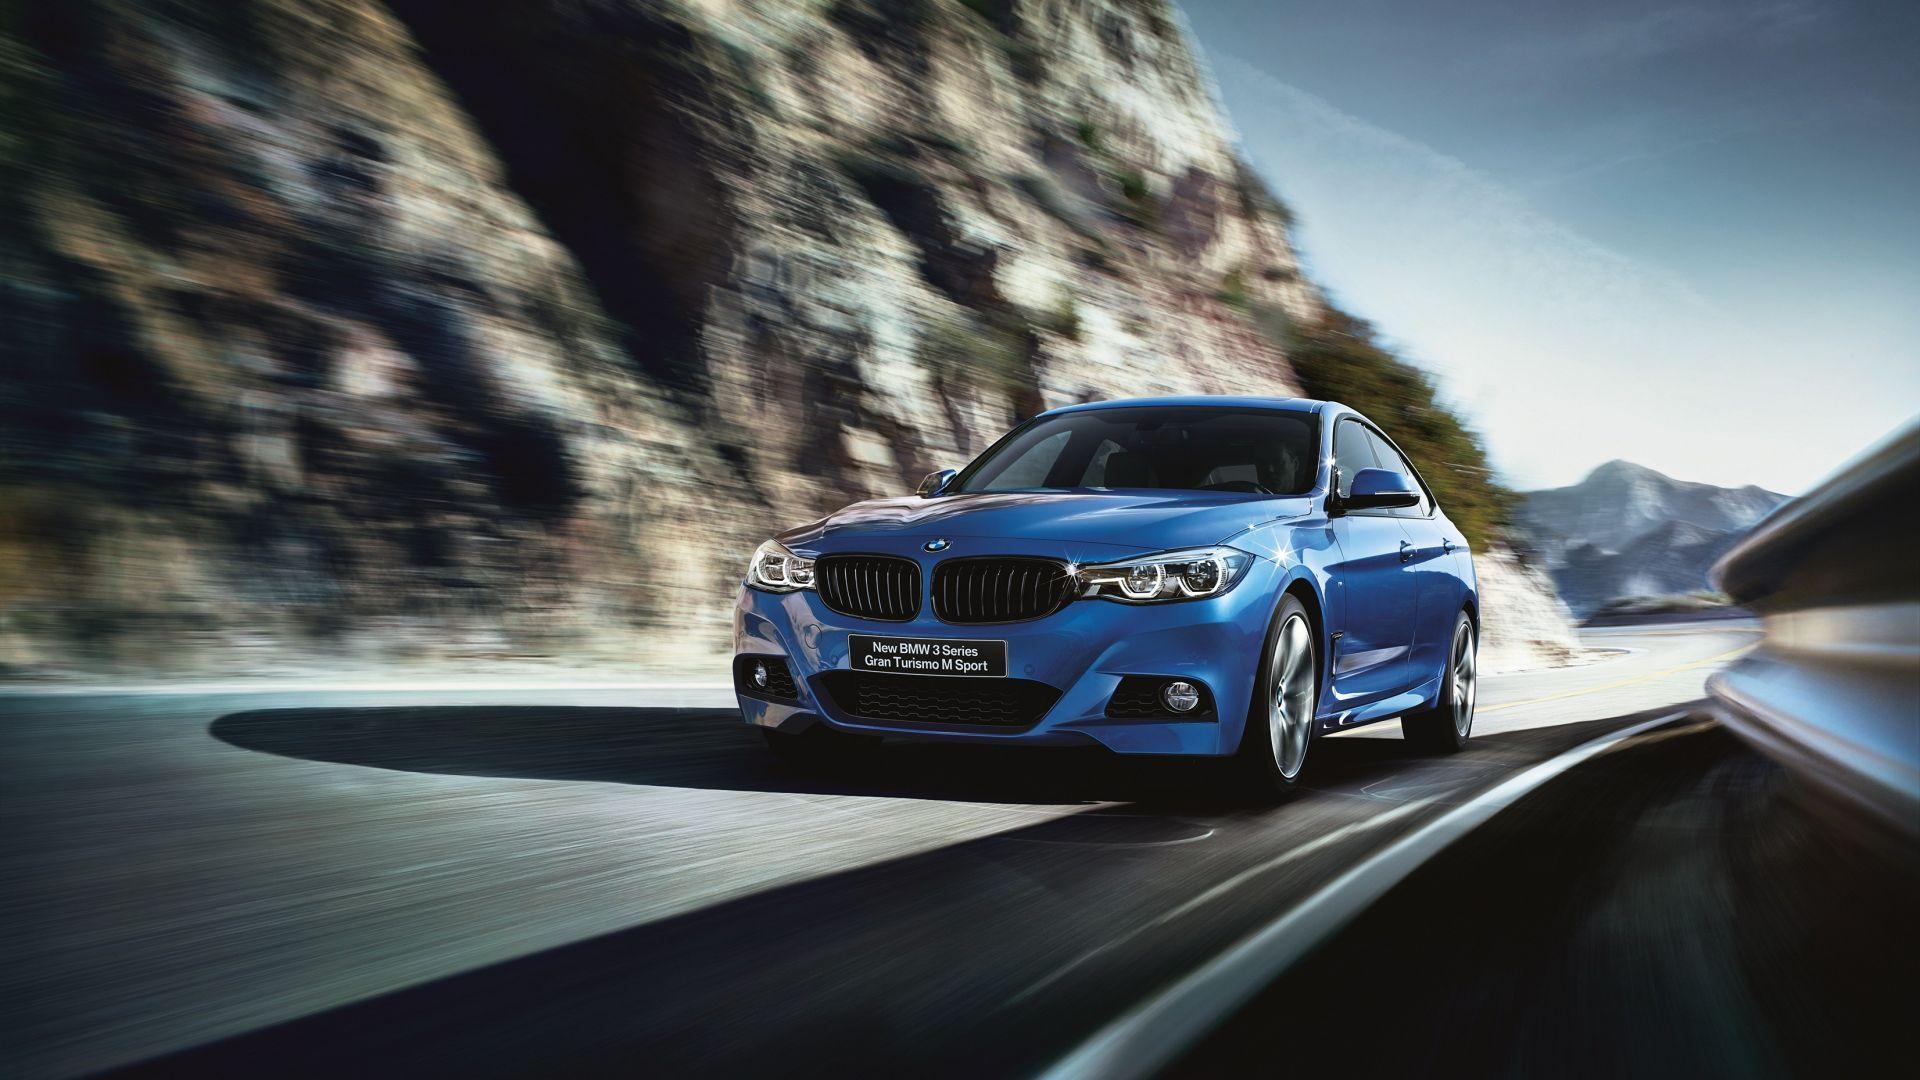 Bmw 3 Series 320i M Sport Wallpapers Wallpaper Cave